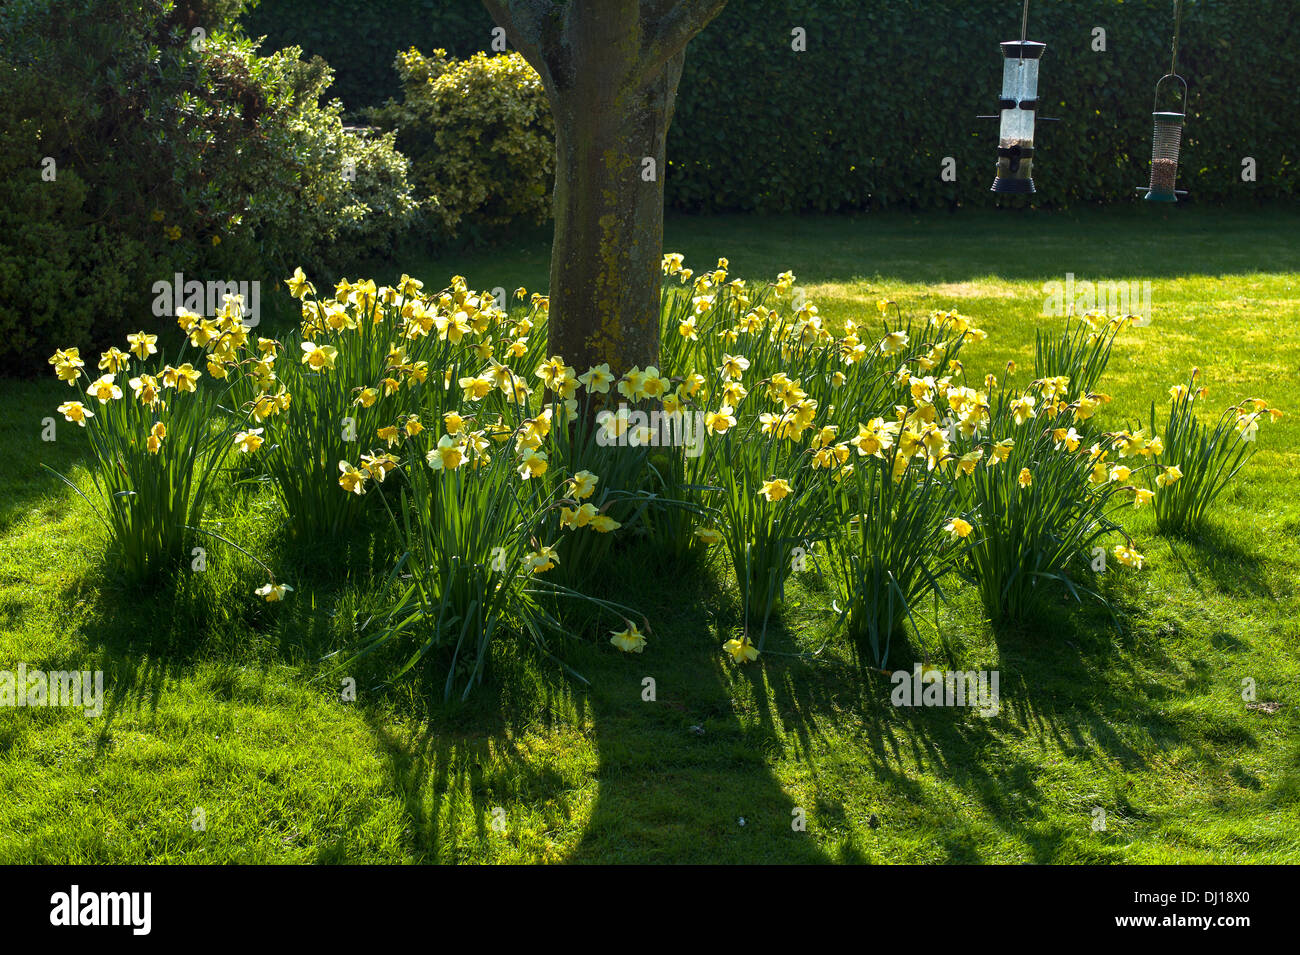 Daffodils naturalised and flowering in a lawn in UK - Stock Image